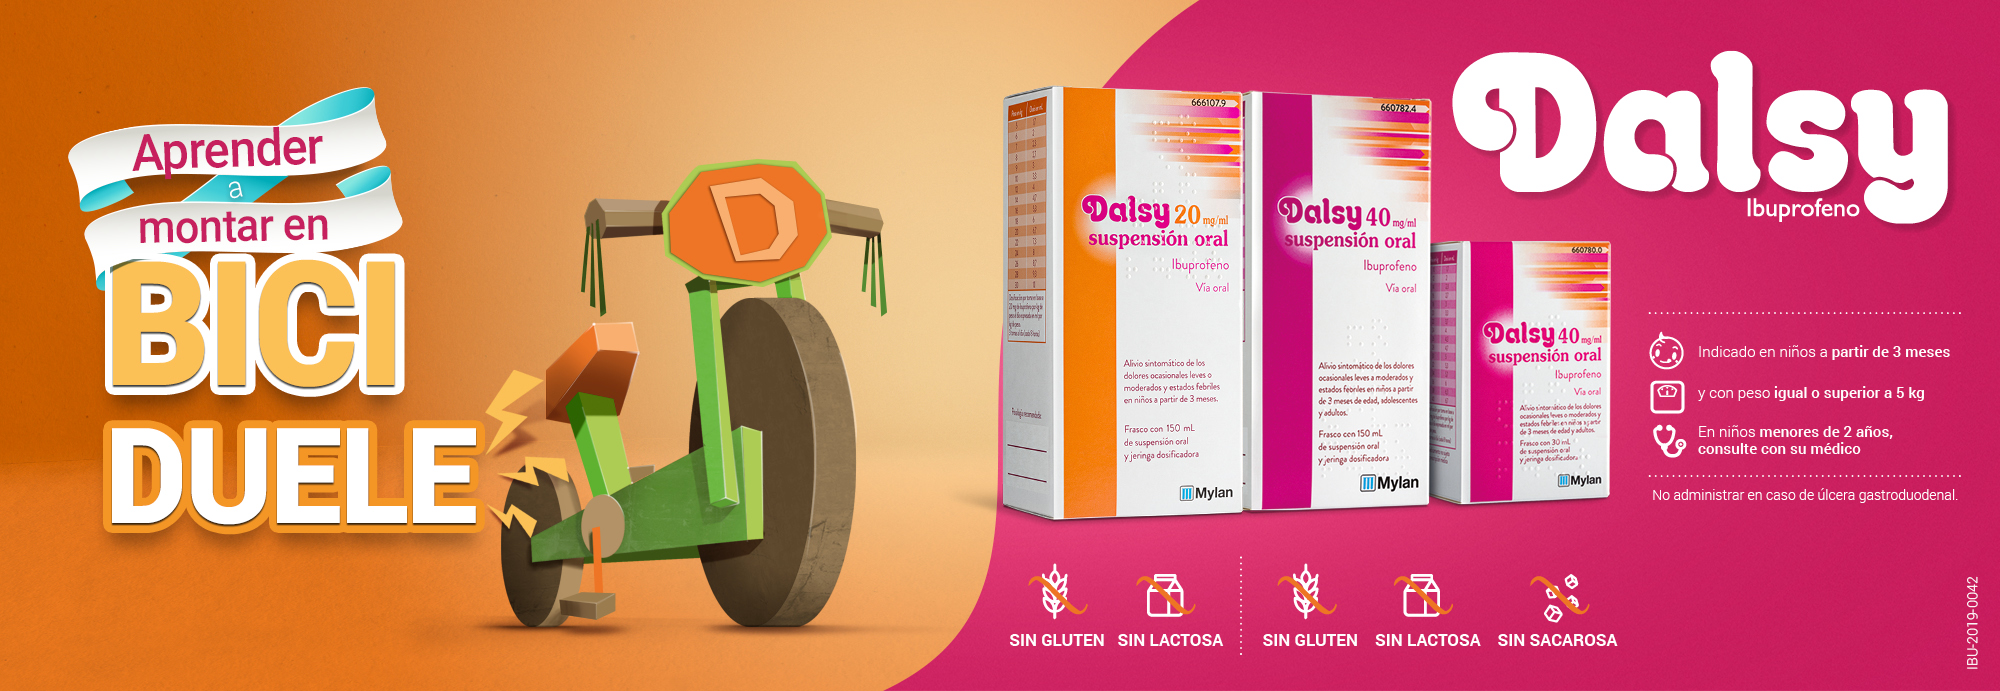 Dasly Suspension Oral ibuprofeno